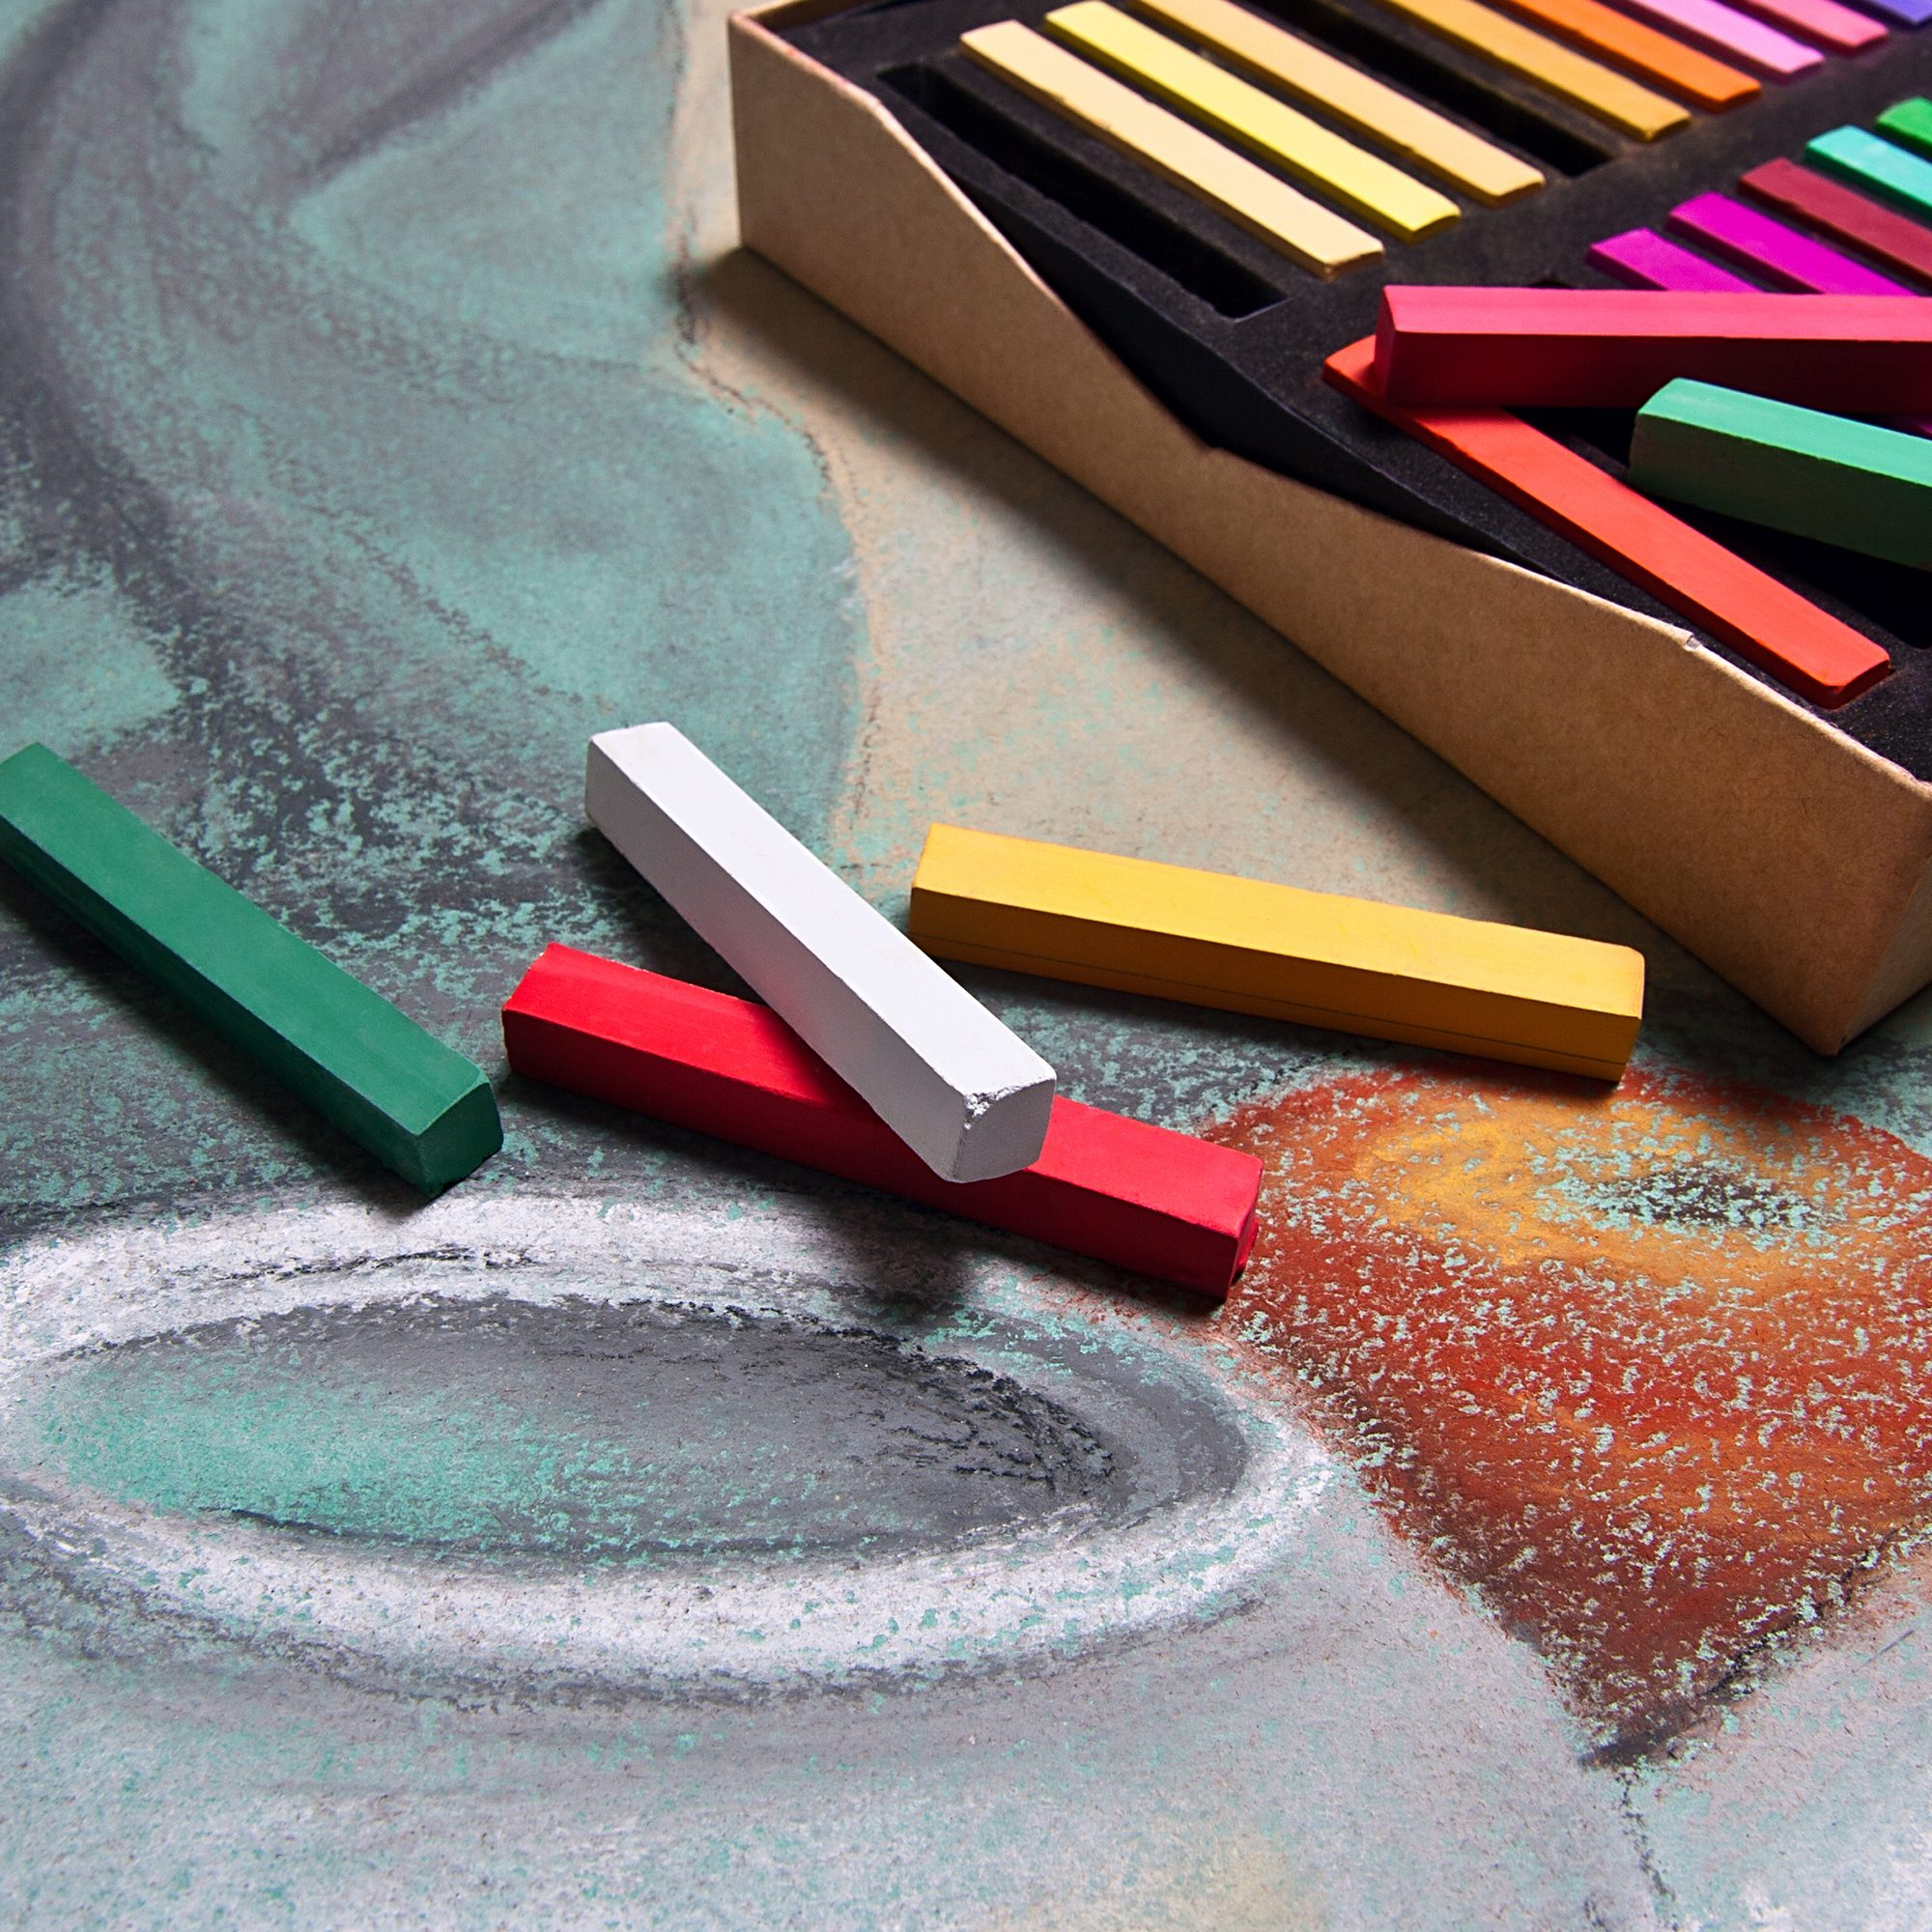 How To Clean an Oil Paint Palette